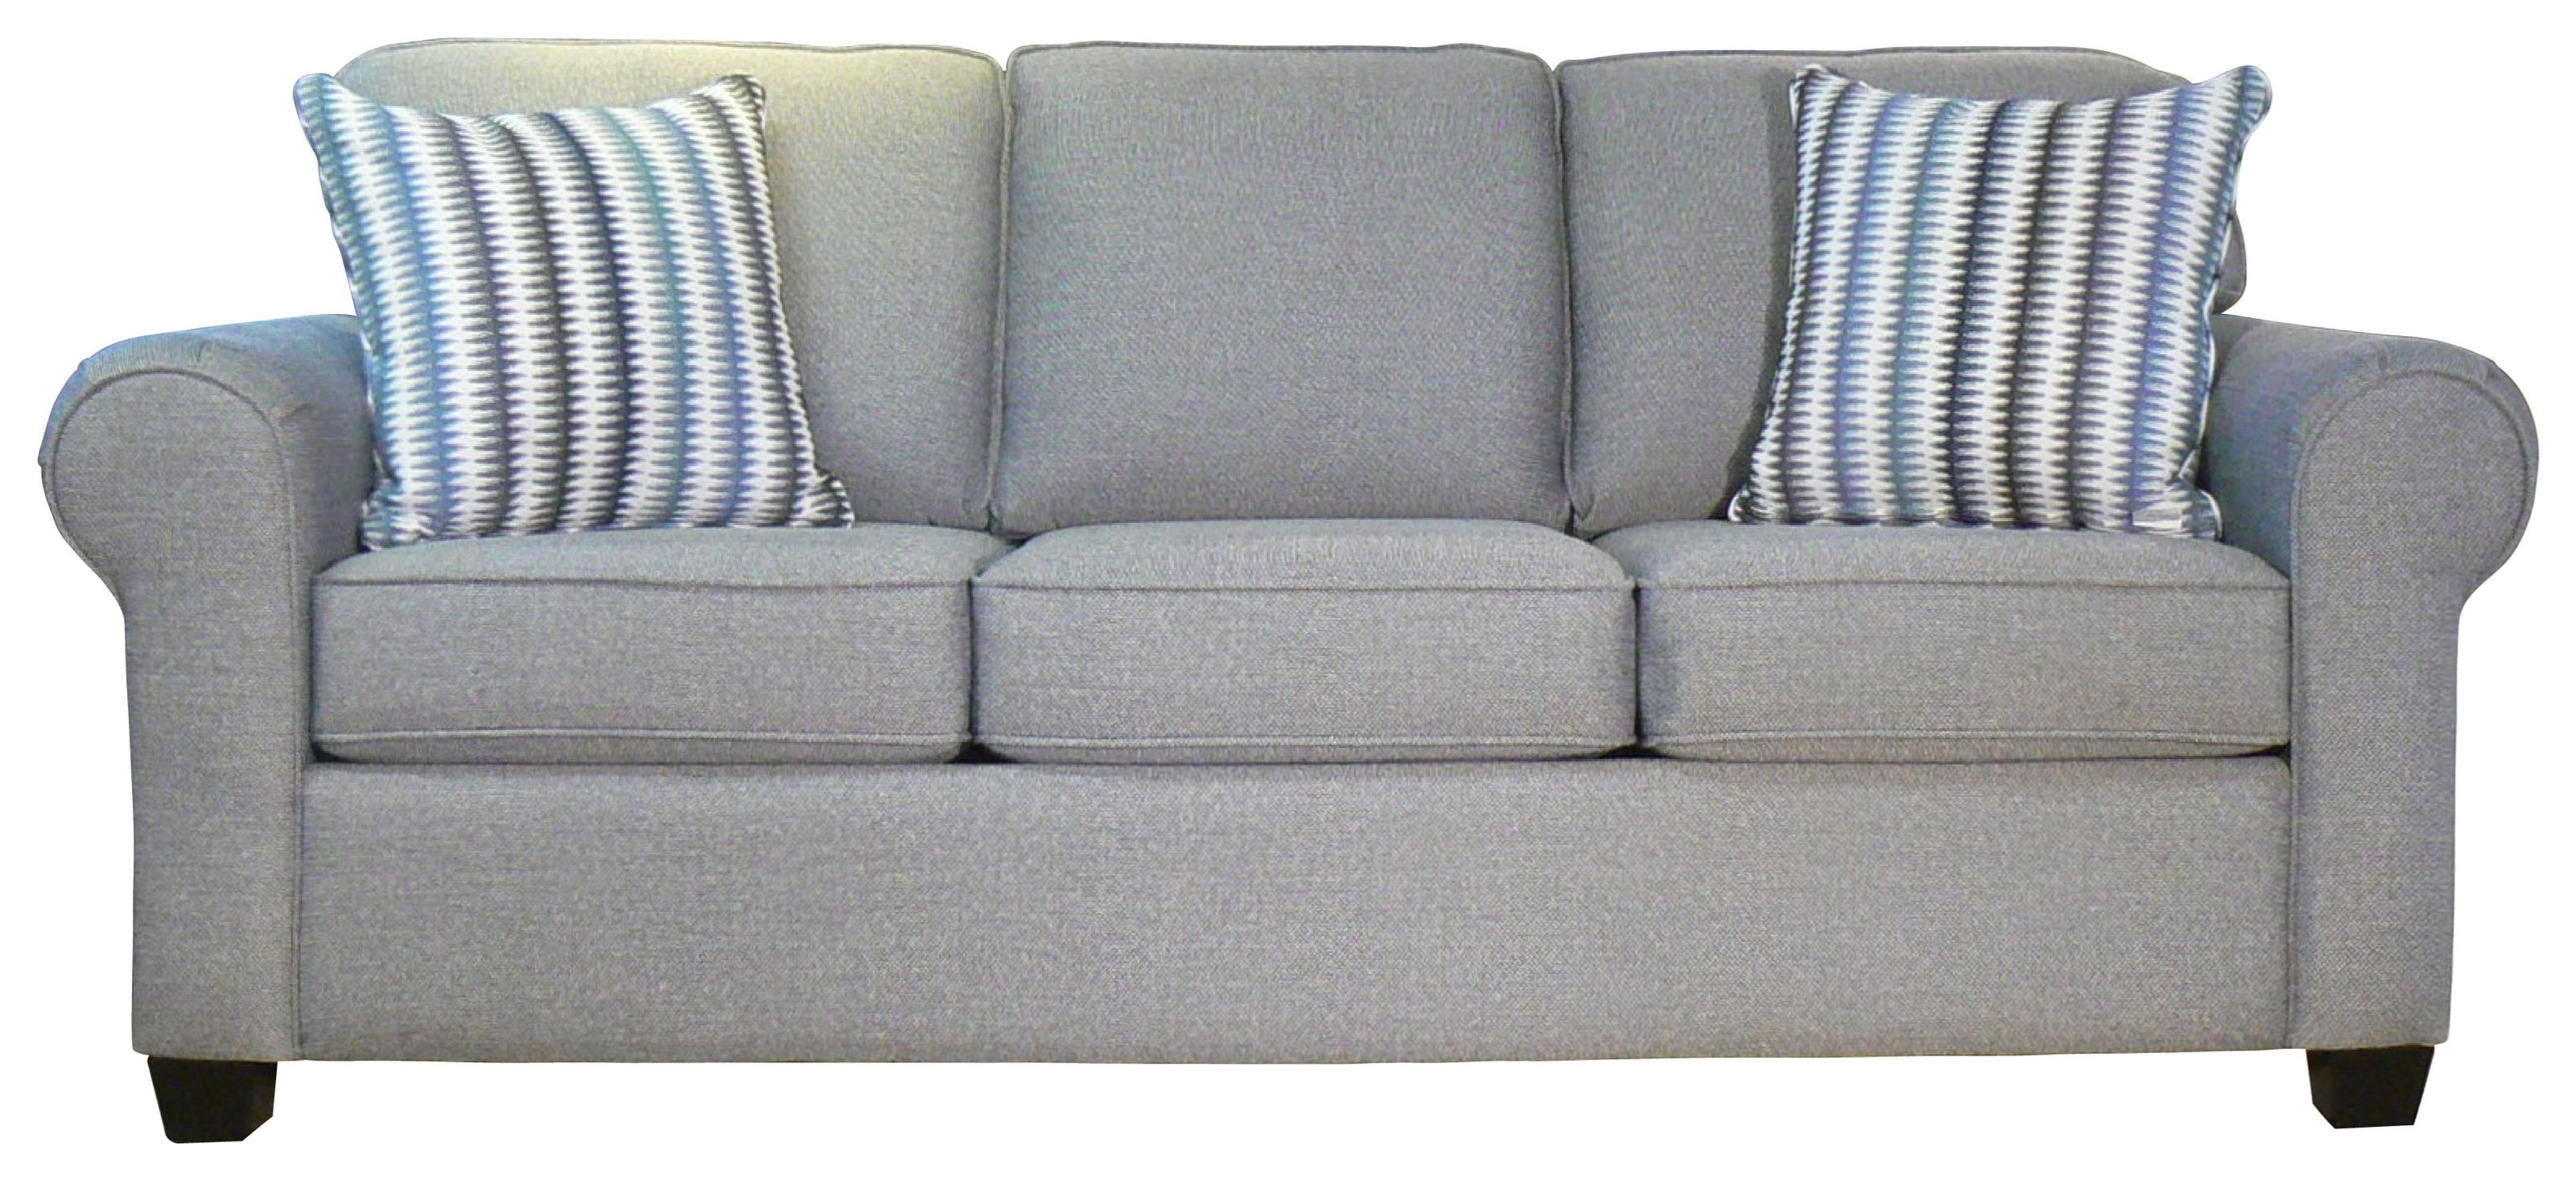 Porter Queen Sofabed by Taelor Designs at Bennett's Furniture and Mattresses